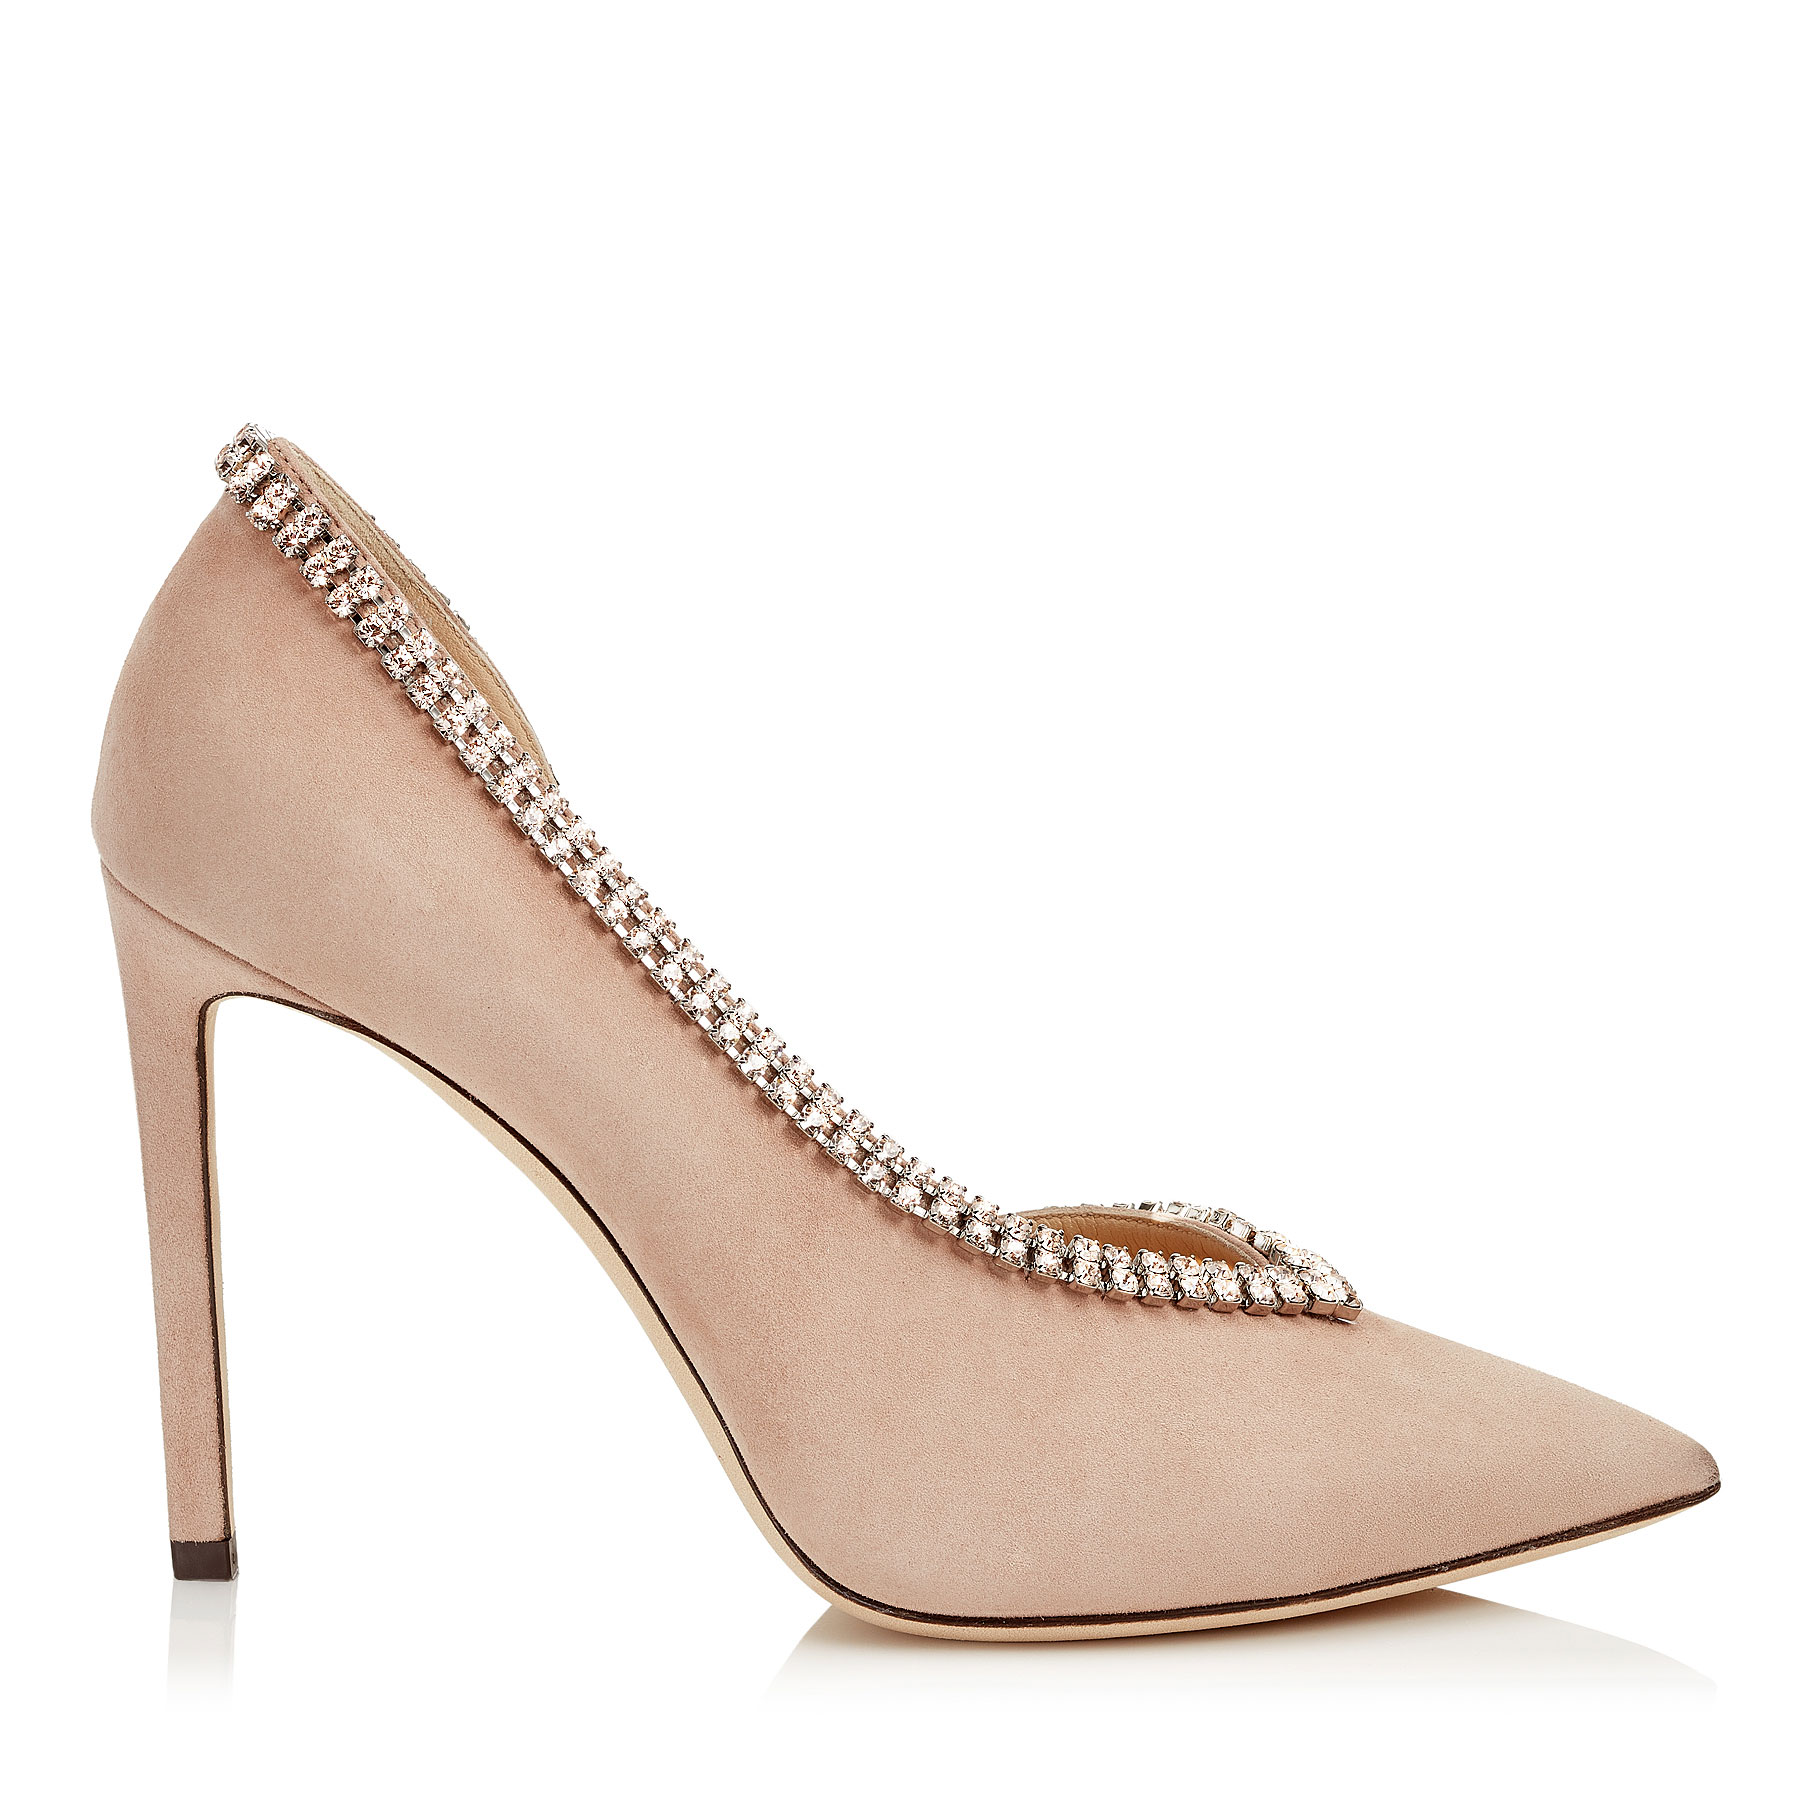 LILIAN 100 Ballet Pink Suede Pointy Toe Pumps with Crystal Trim by Jimmy Choo